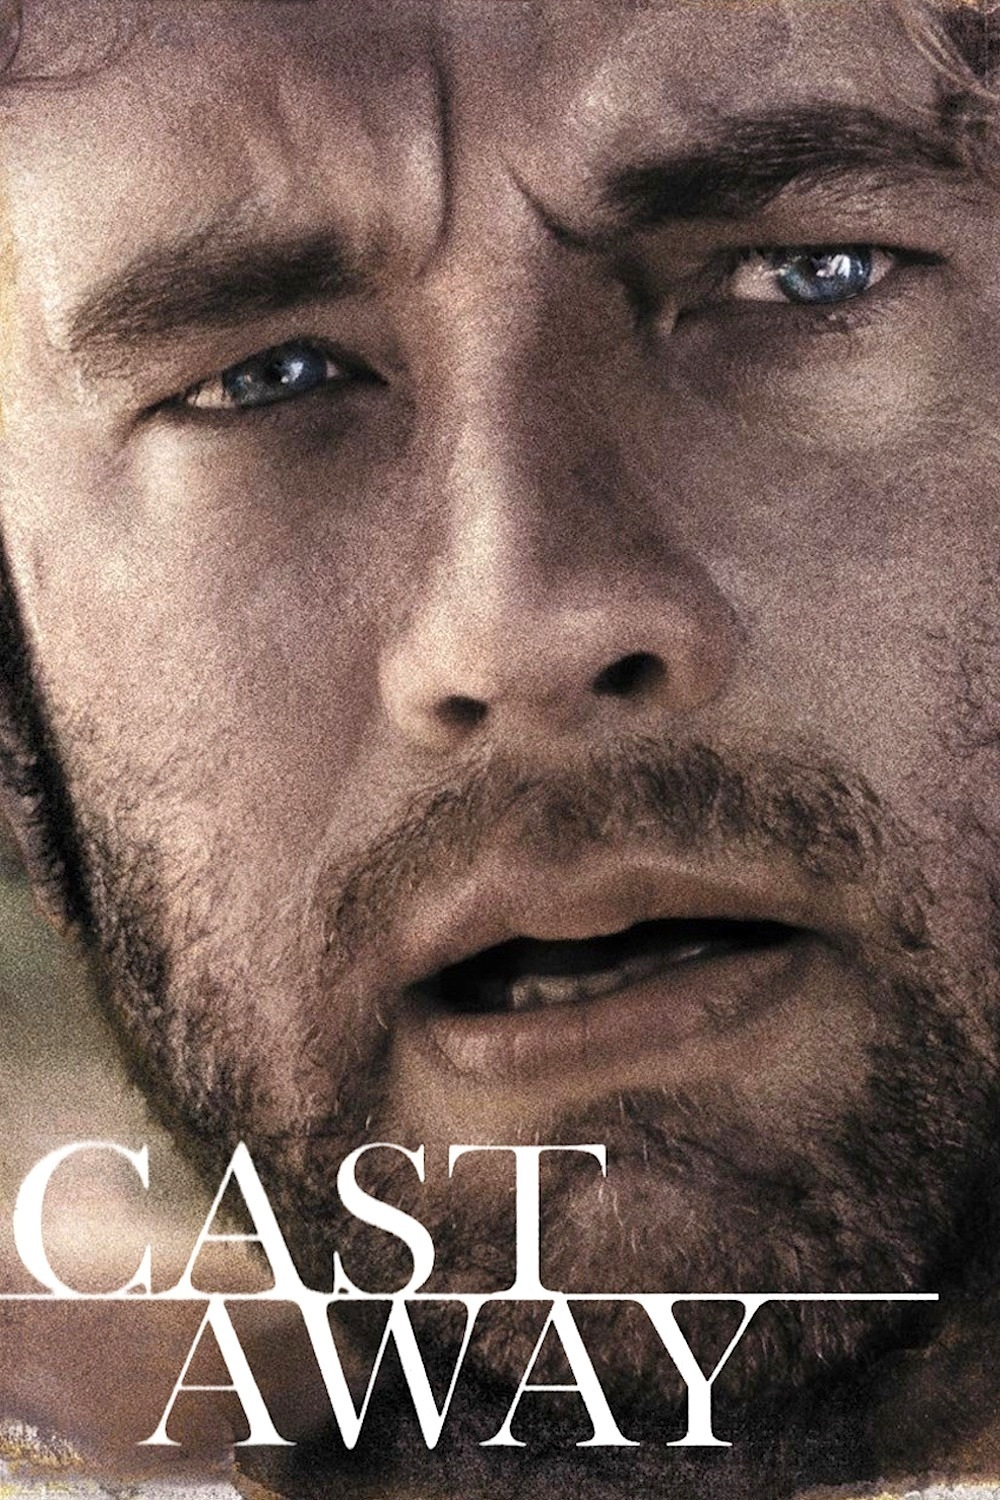 Cast-Away-2000-Hindi-Dubbed-Movie-Watch-Online